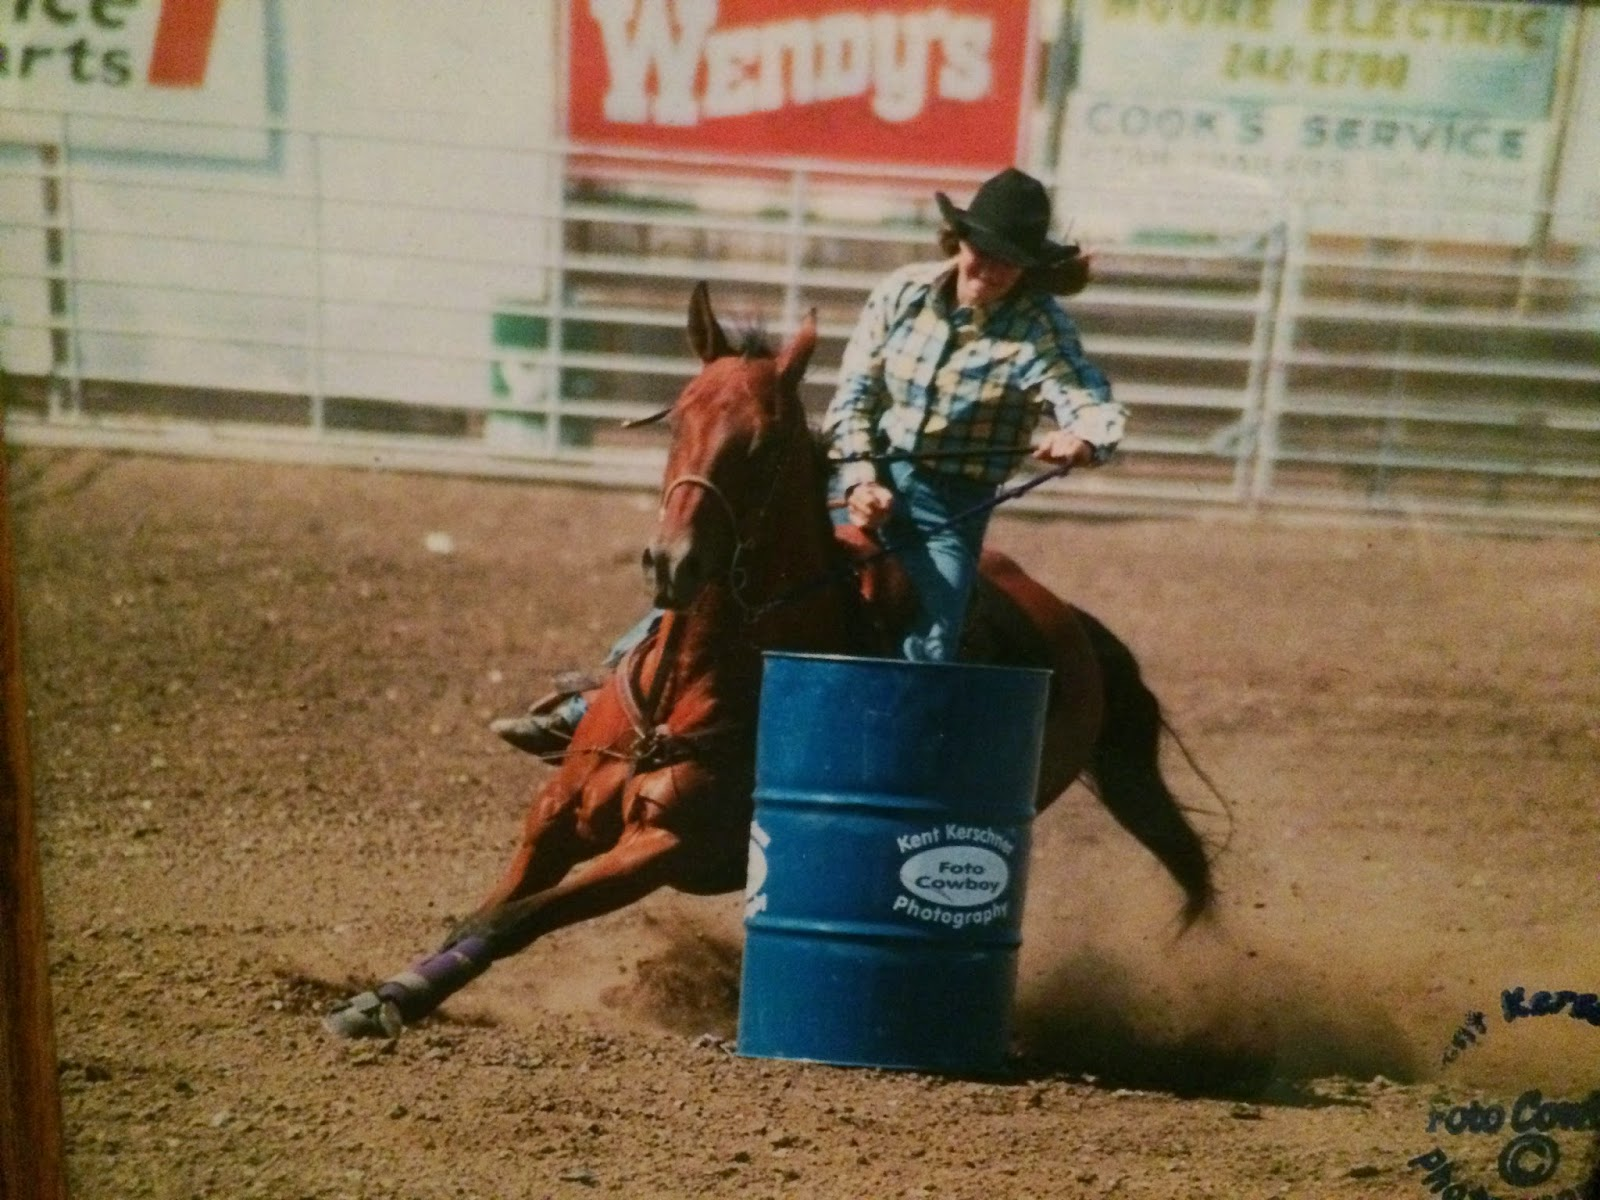 Barrel racing at Ottawa, KS high school rodeo